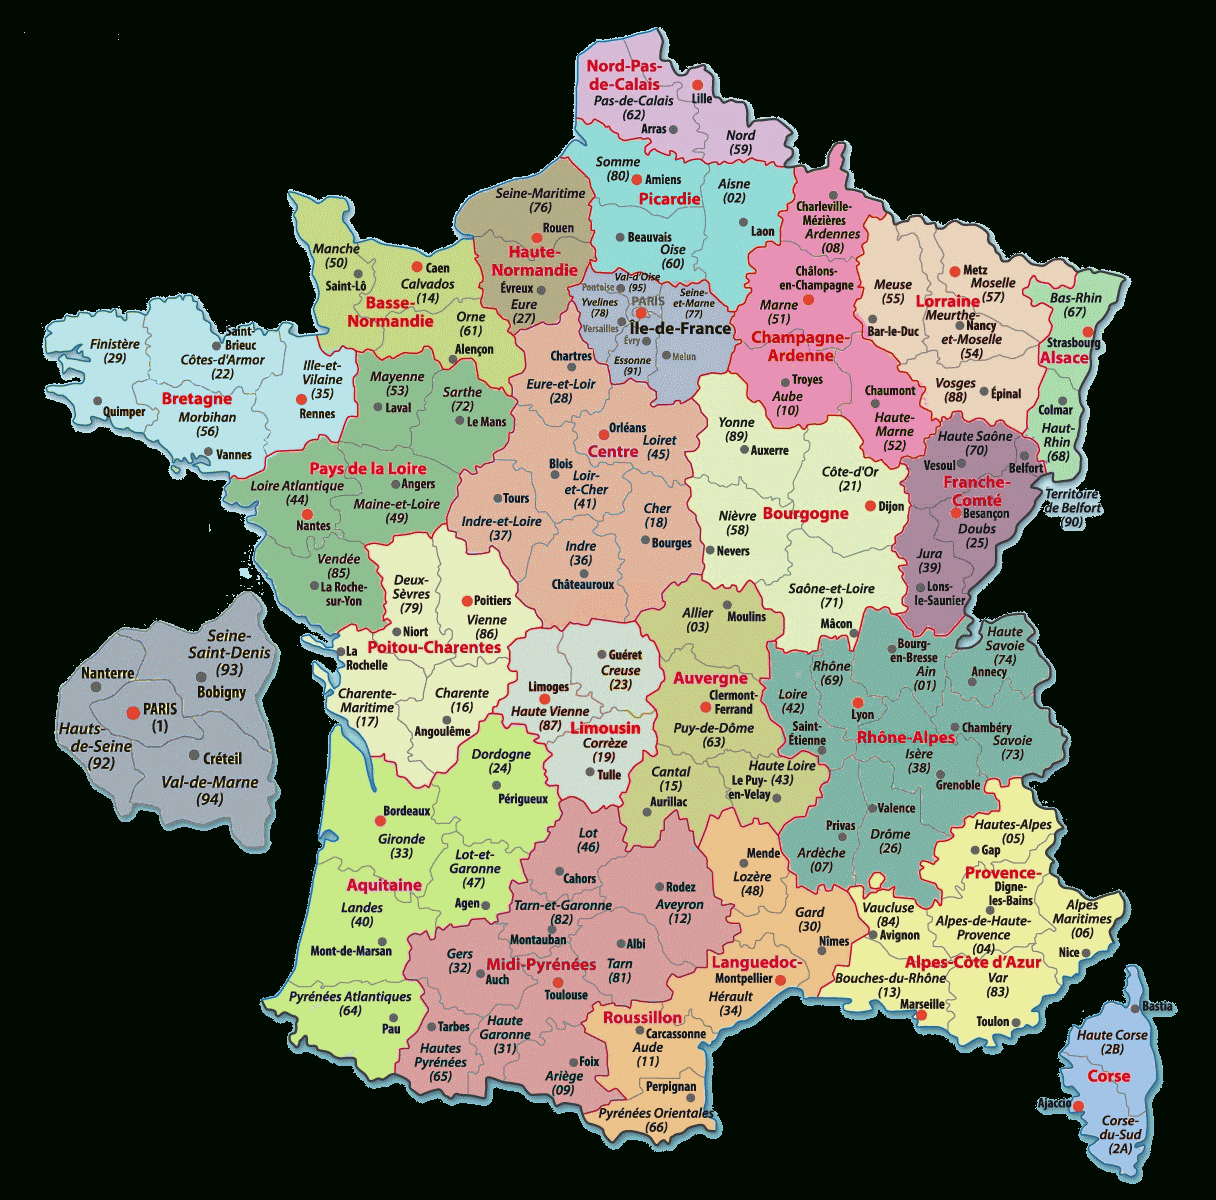 Carte De France Departements : Carte Des Départements De France intérieur Département De La France Carte